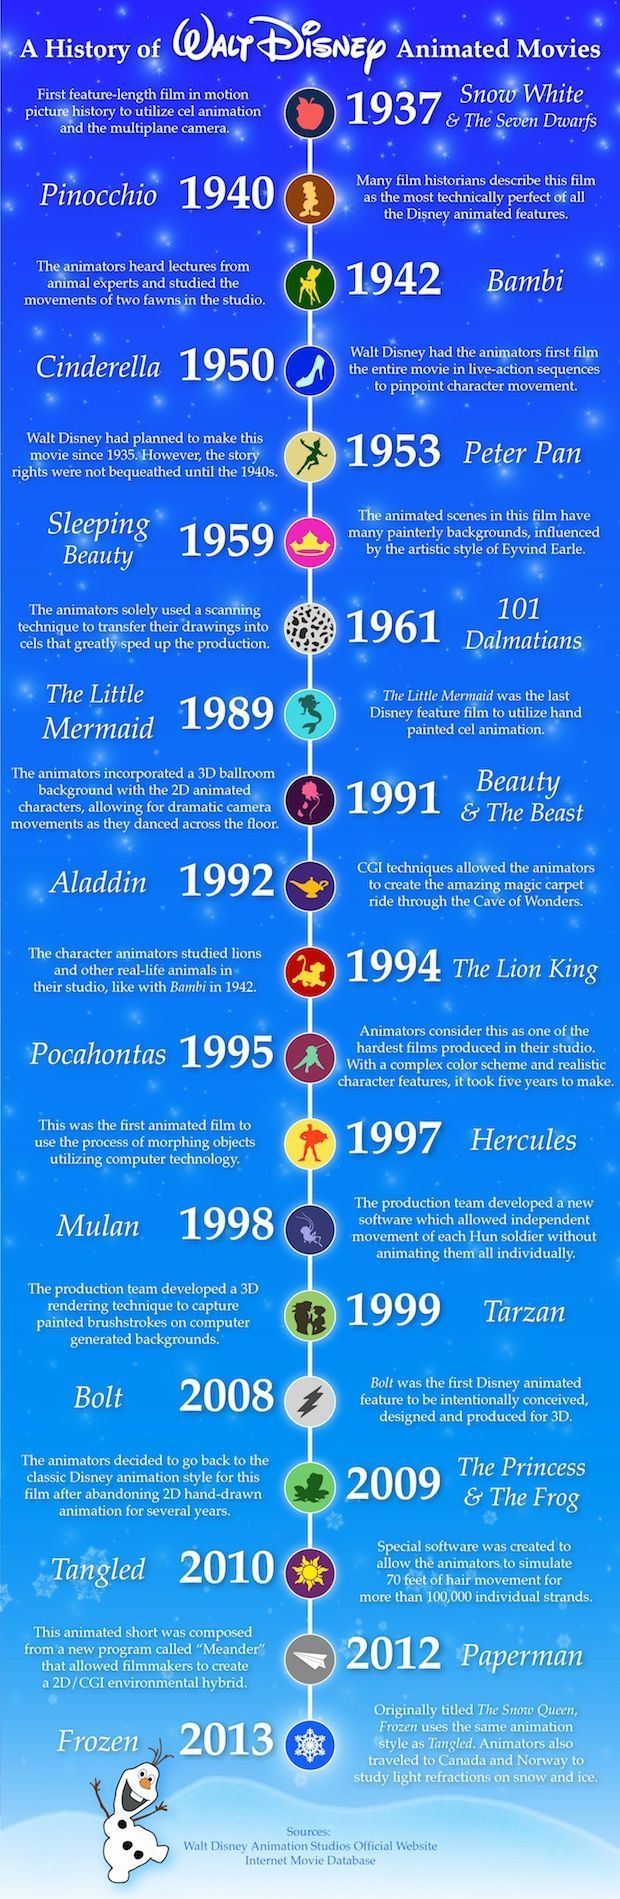 History of Walt Disney Animated Movies: From Snow White in 1937 to Frozen in 2013, here are Disney's best animated movies with a brief comment about each.   #Disney #movies #animation